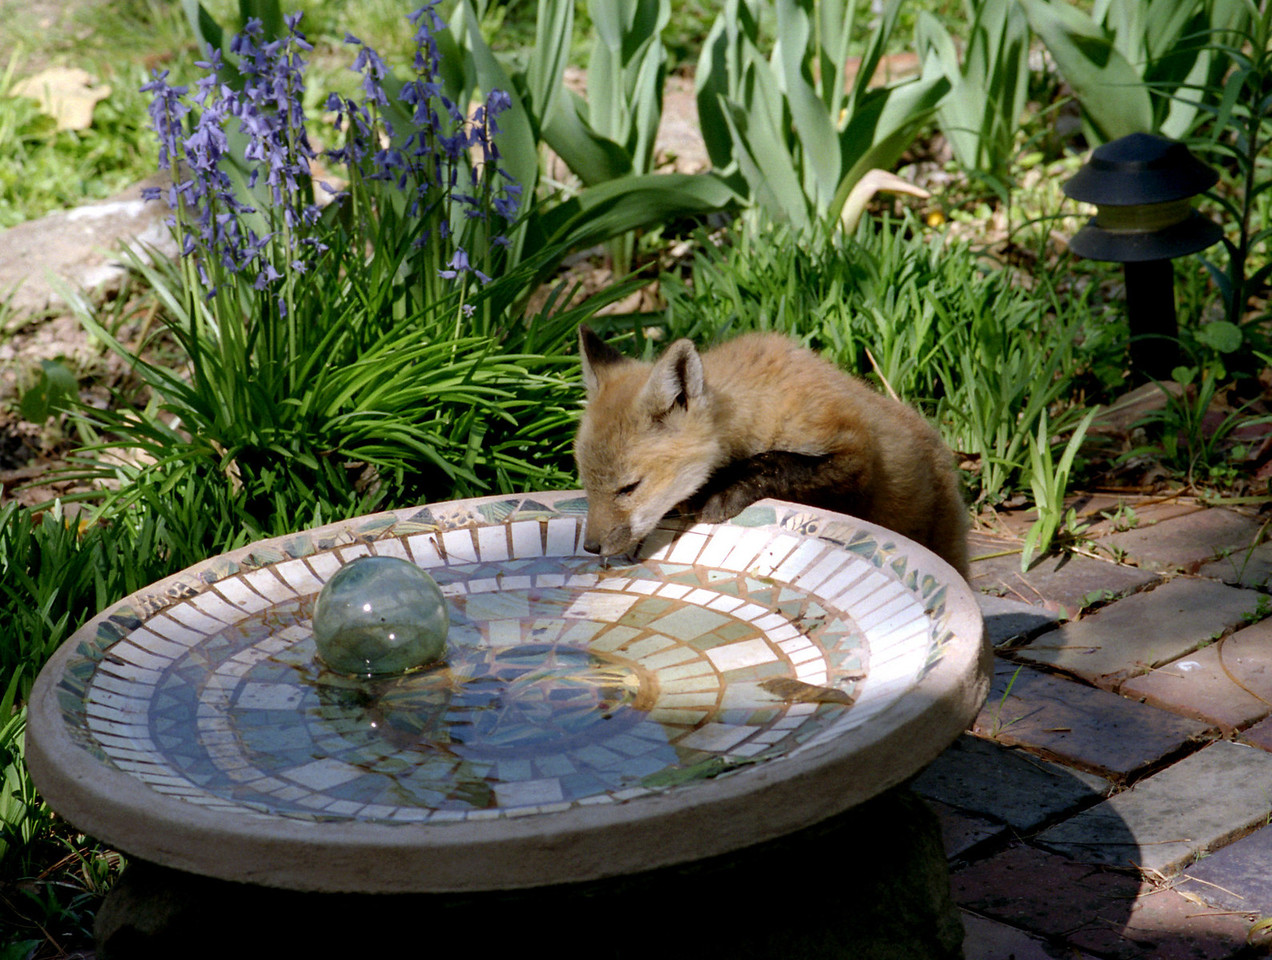 For several years a fox family lived in our back yard. This young one liked to drink out of Rita's bird bath.